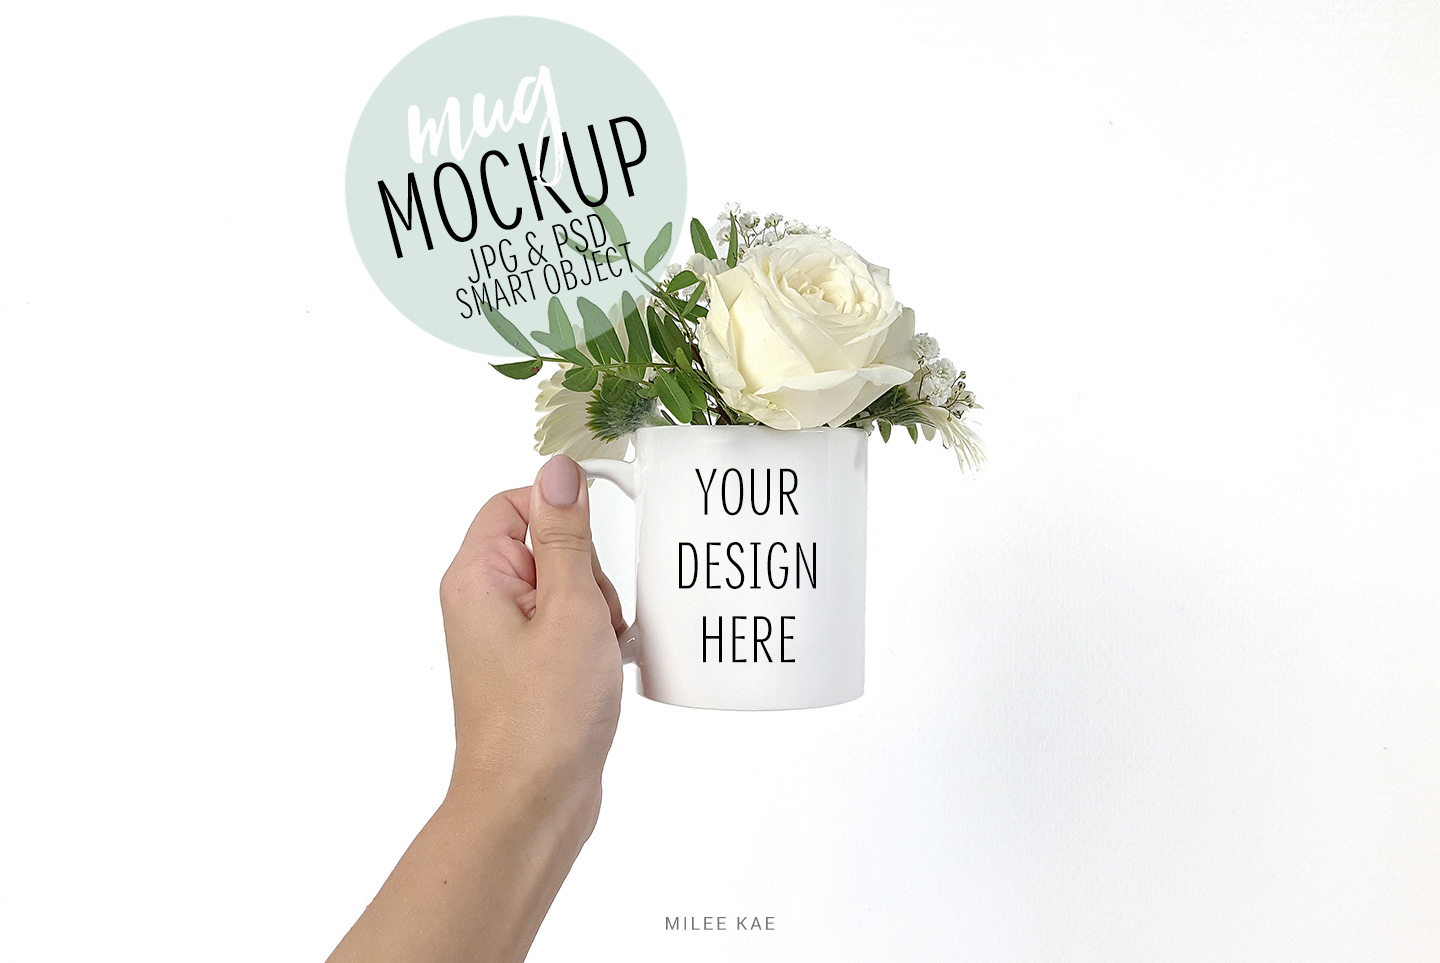 White coffee mug mockup, JPG & PSD example image 1